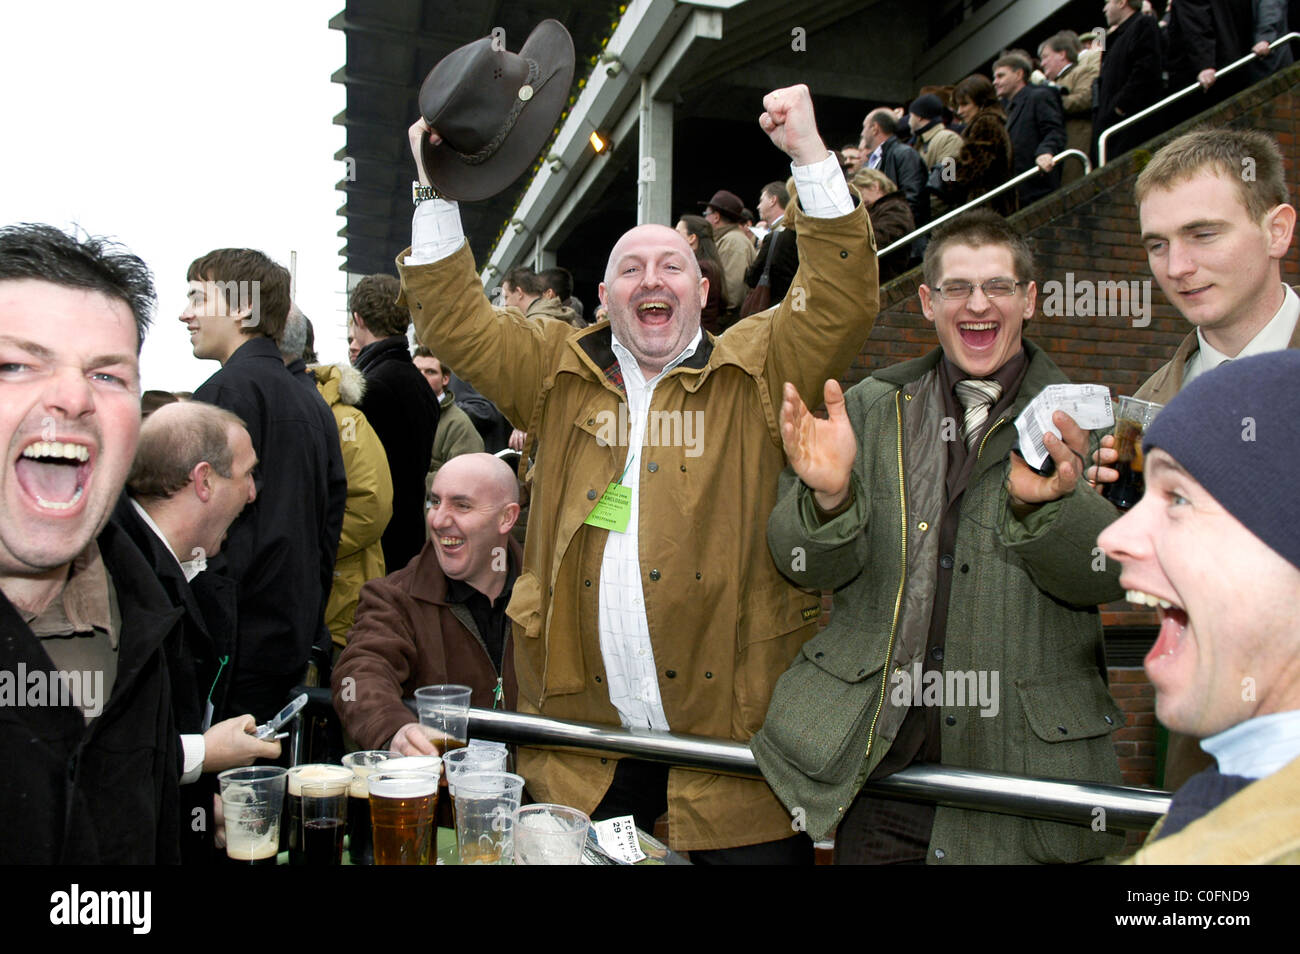 a group of men jumping for joy after watching the horse they bet a group of men jumping for joy after watching the horse they bet on win at cheltenham races